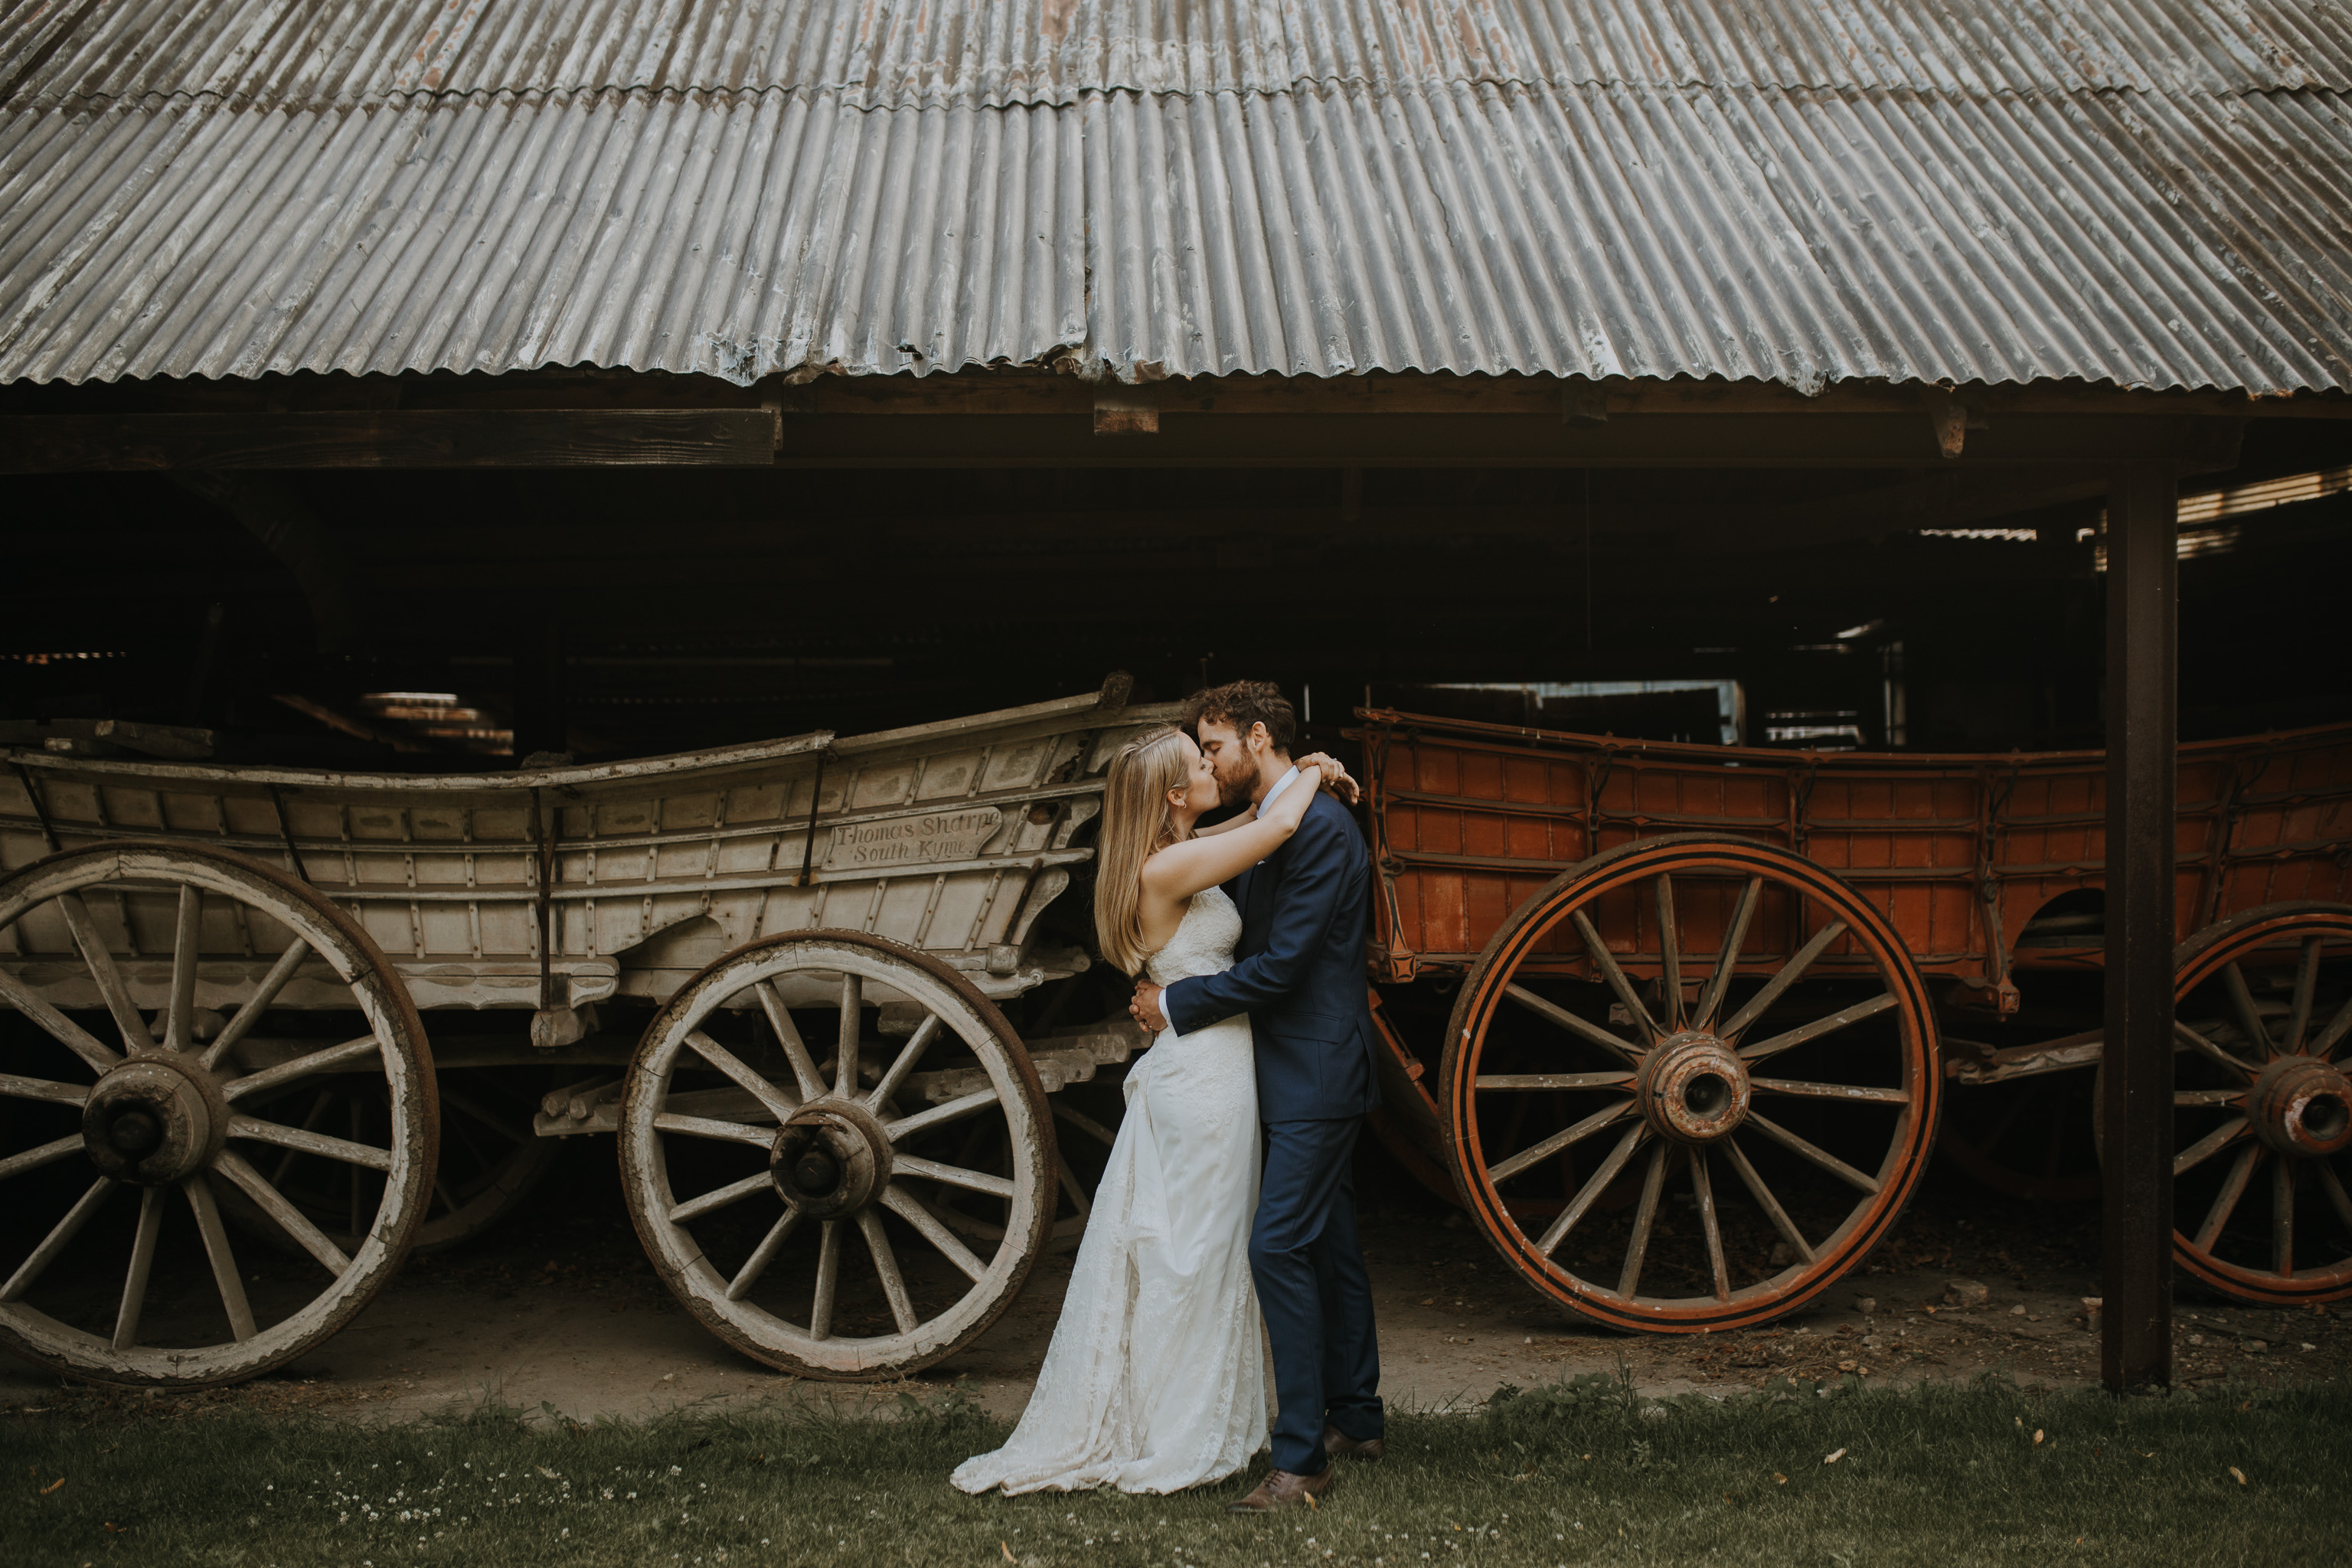 a couple kiss in front of vintage wagons